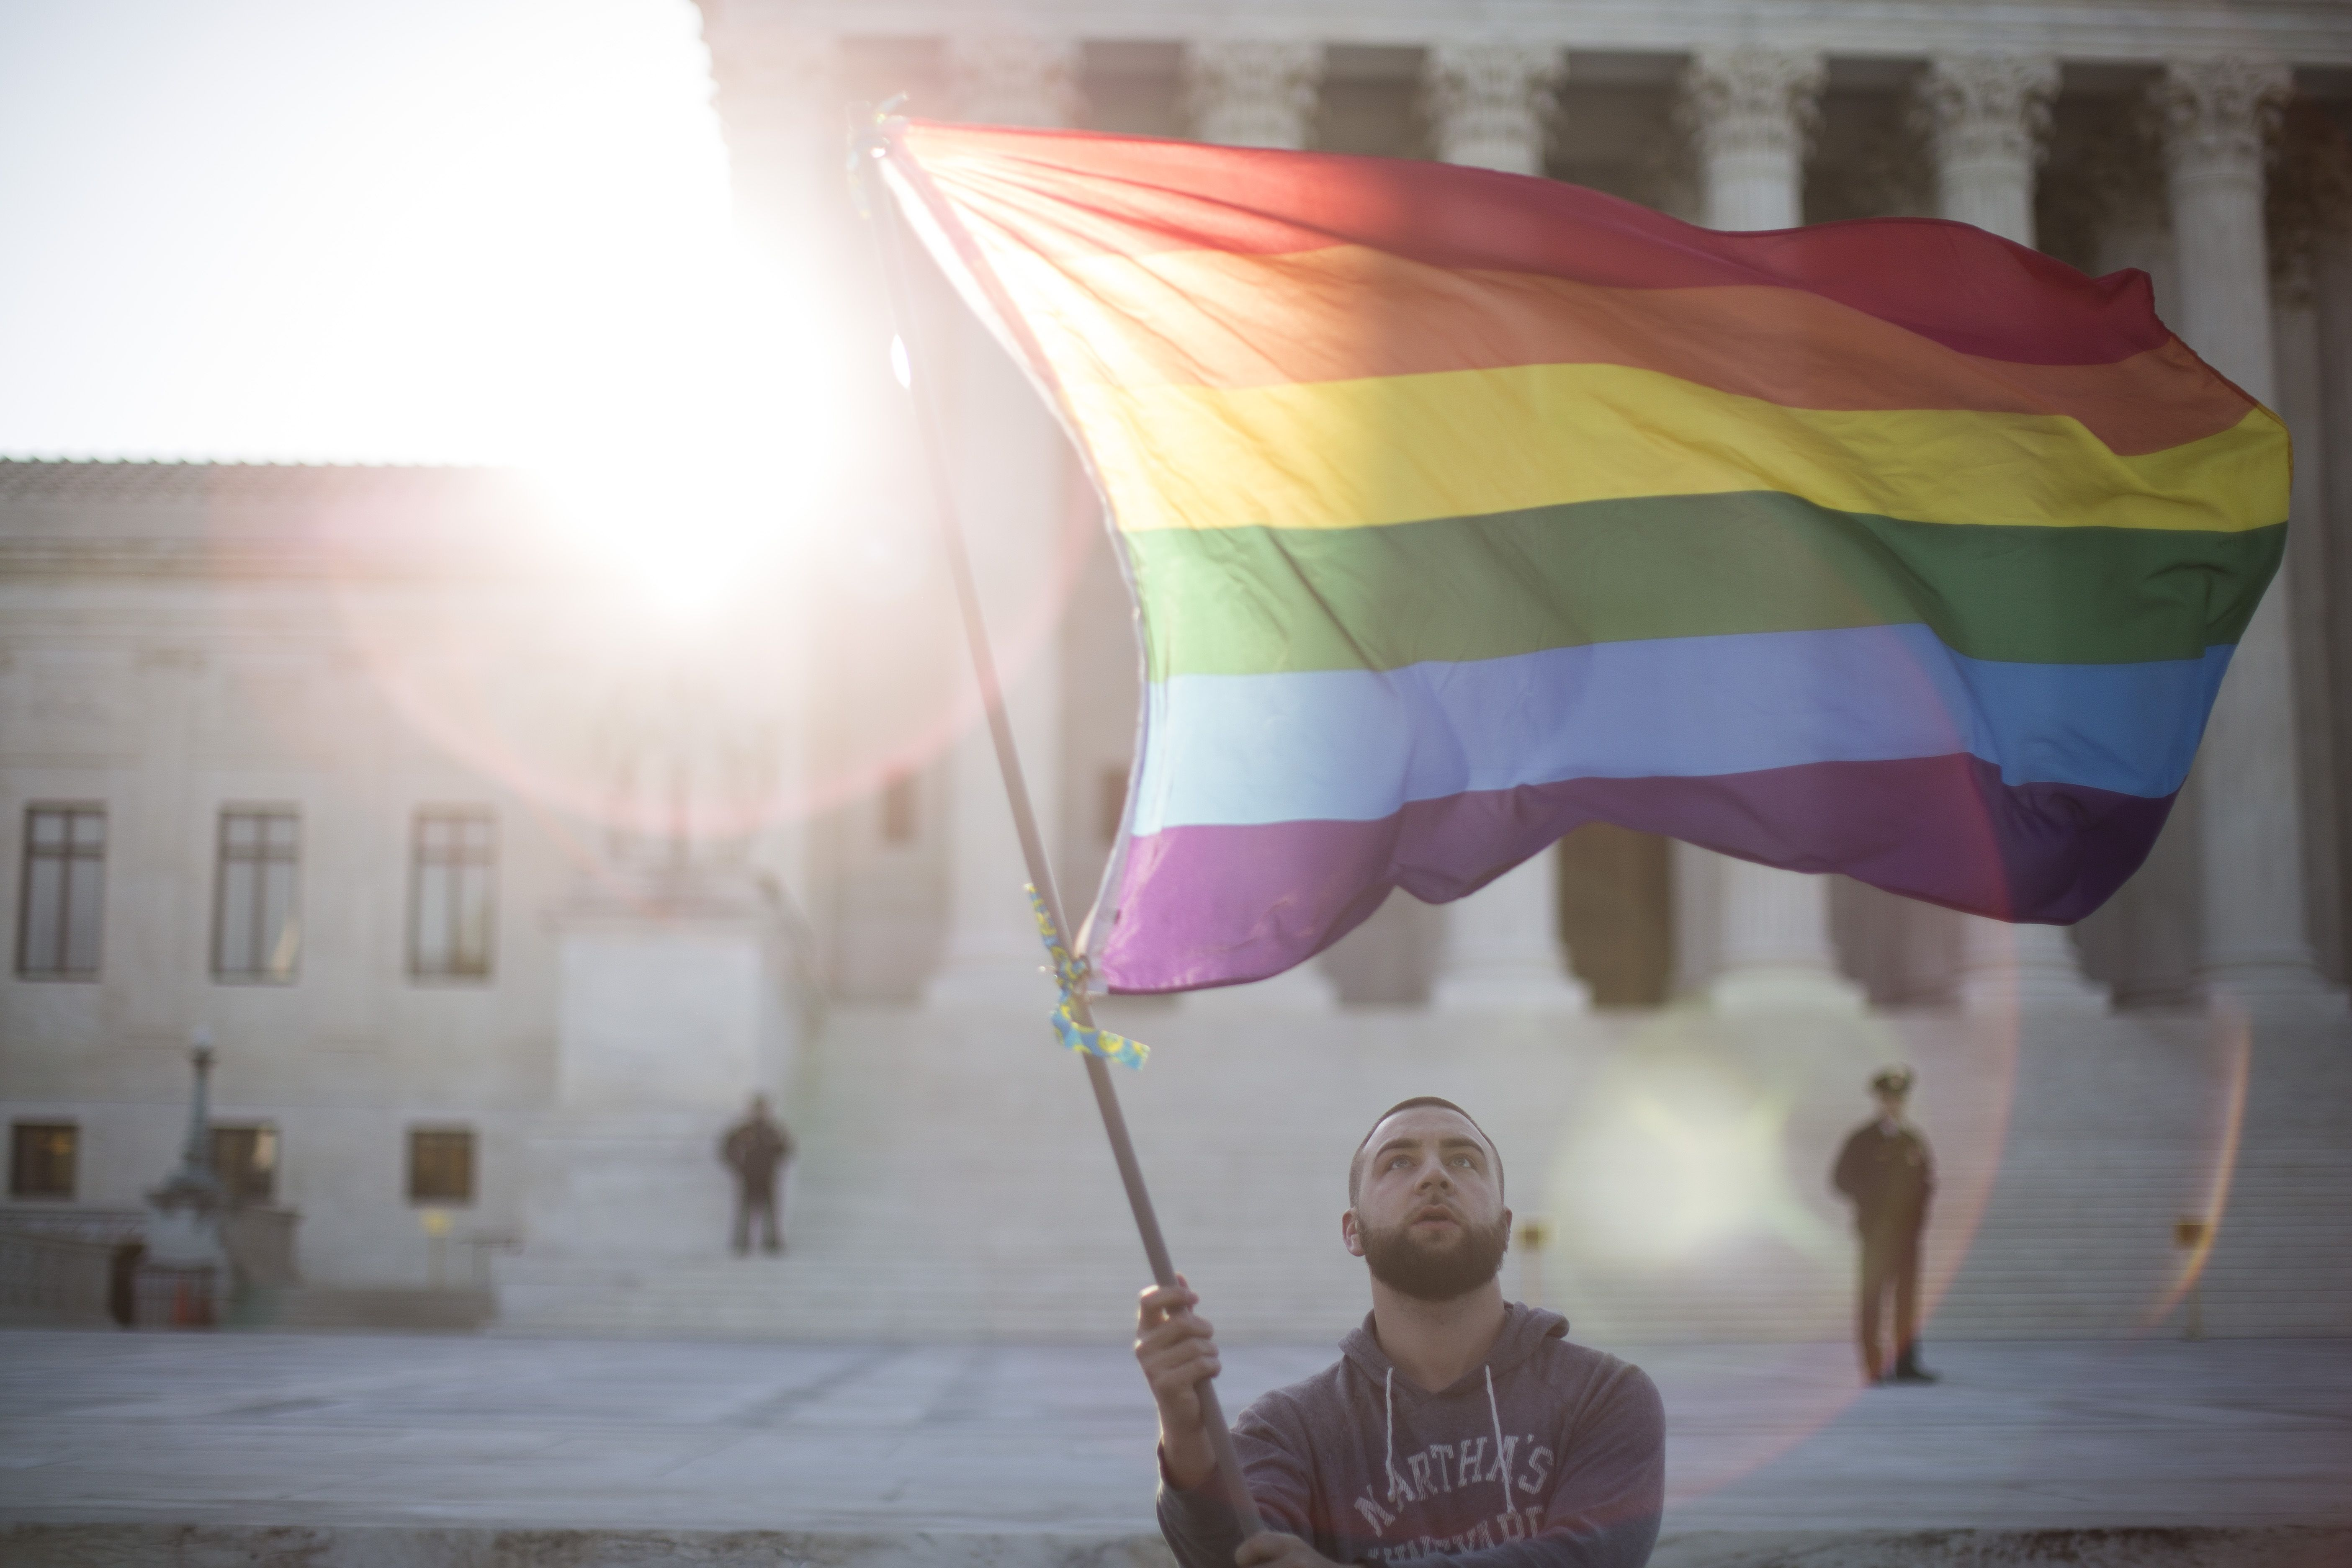 The Supreme Court Is Set to Decide Another Landmark Gay Rights Case. But It Isn't 2015 Anymore.